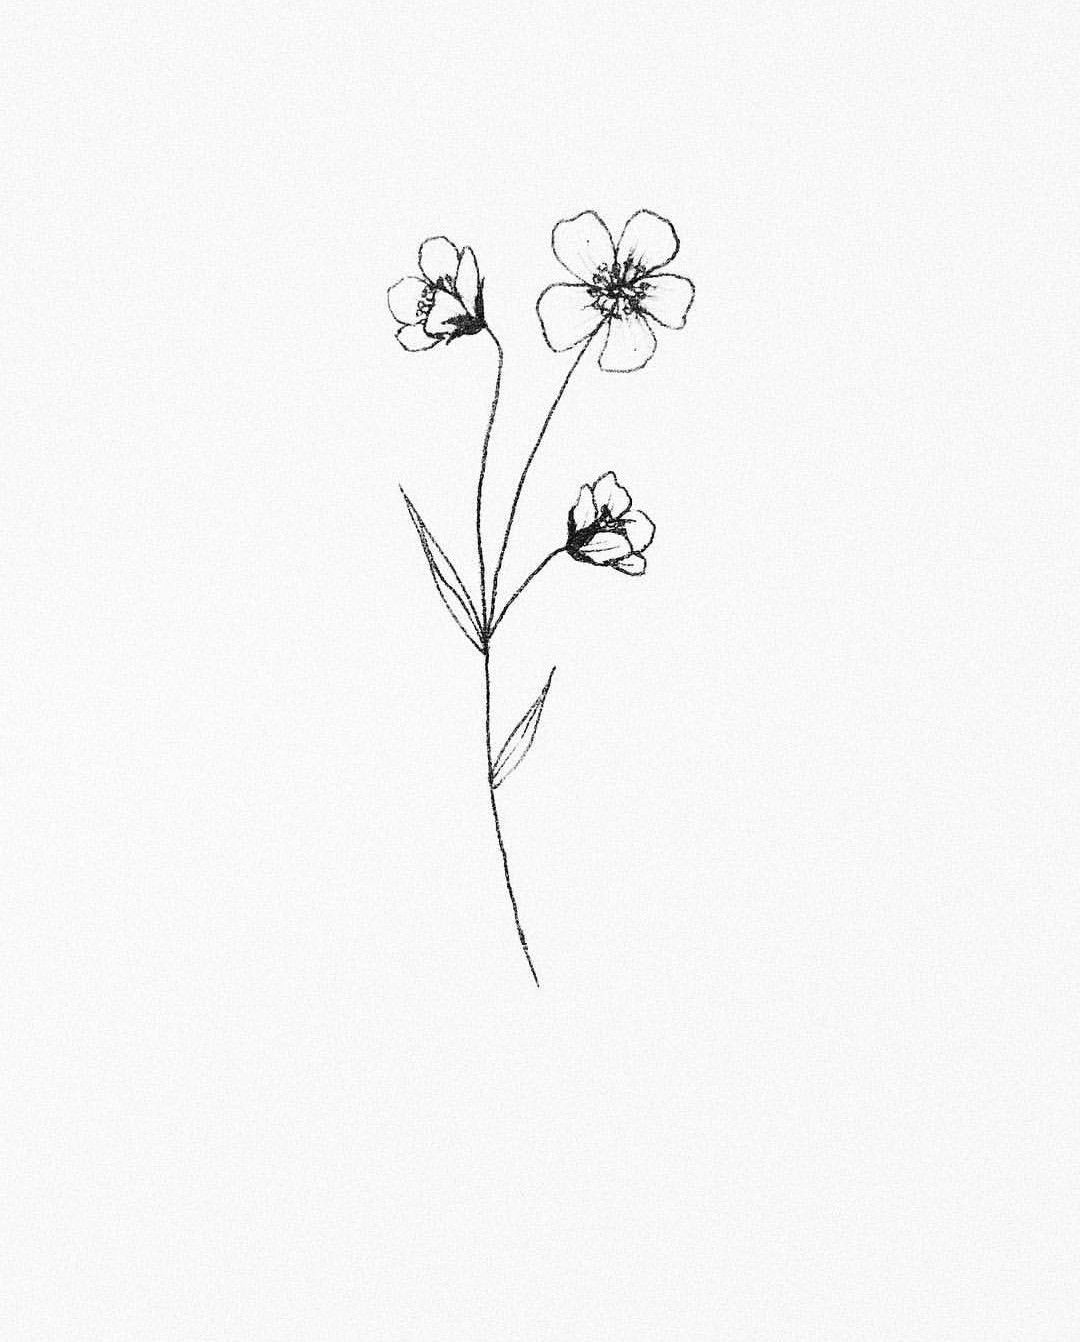 Pin By M C On Tats Small Flower Drawings Small Flower Tattoos Plant Sketches